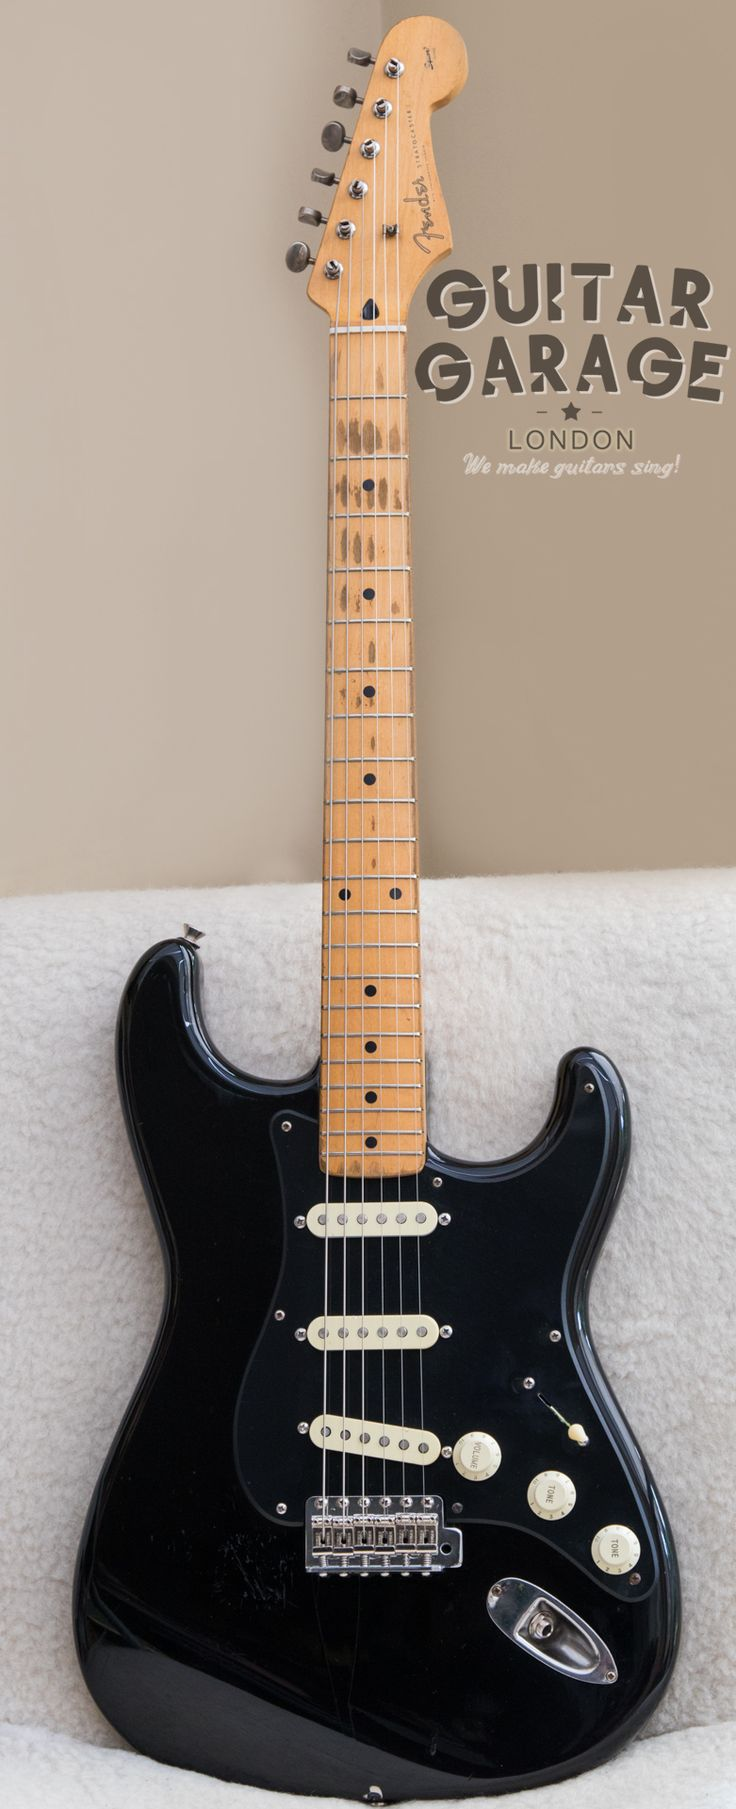 GUITAR GARAGE LONDON CUSTOM BUILT Dave Gilmour's Black Strat. Based on a 1956 reissue from Japan with D-shape very worn 7,25'' neck, Seymour Duncan SSL-5 in the bridge, CRL switch, CTS 250K pots, Mullard NOS capacitor, cloth wiring, steel tremolo block, bent saddles, Kluson tuners. Full shielding inside. Built to order.